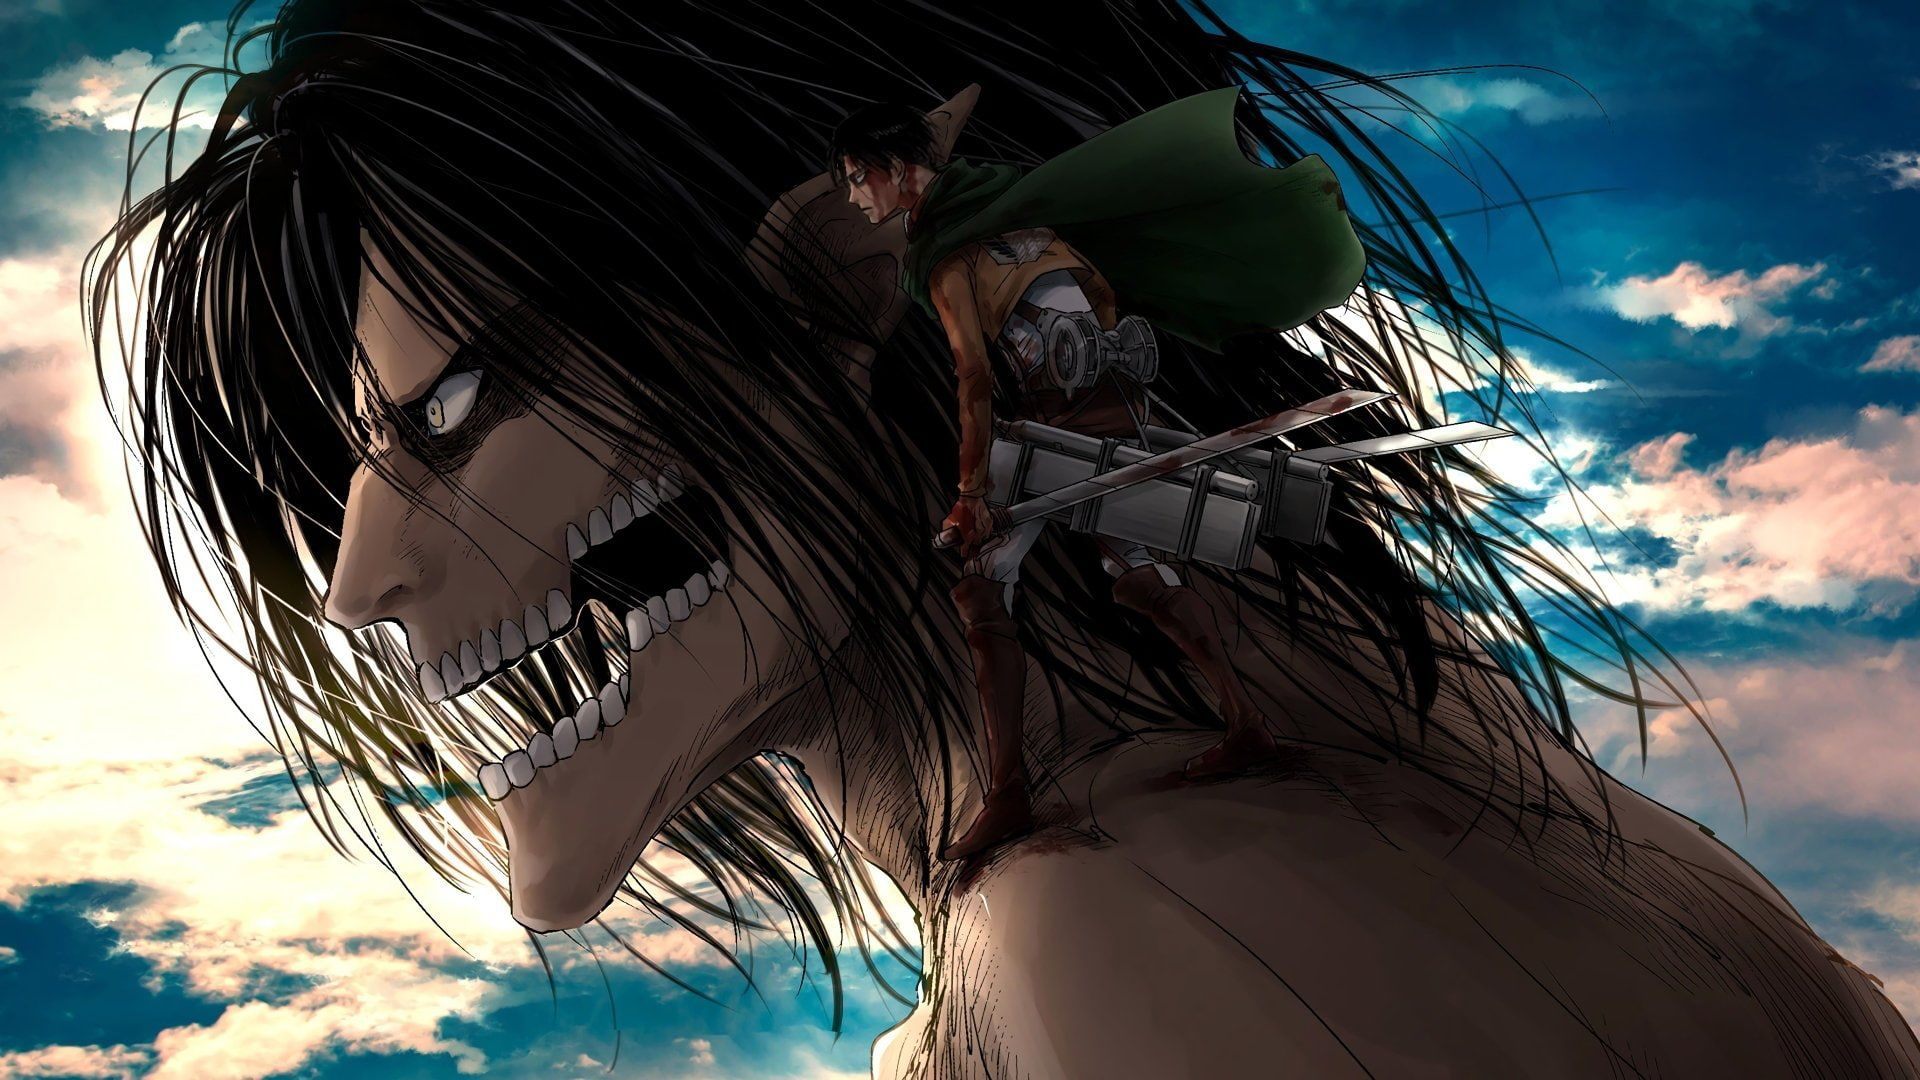 Anime Attack On Titan Eren Yeager Levi Ackerman 1080P